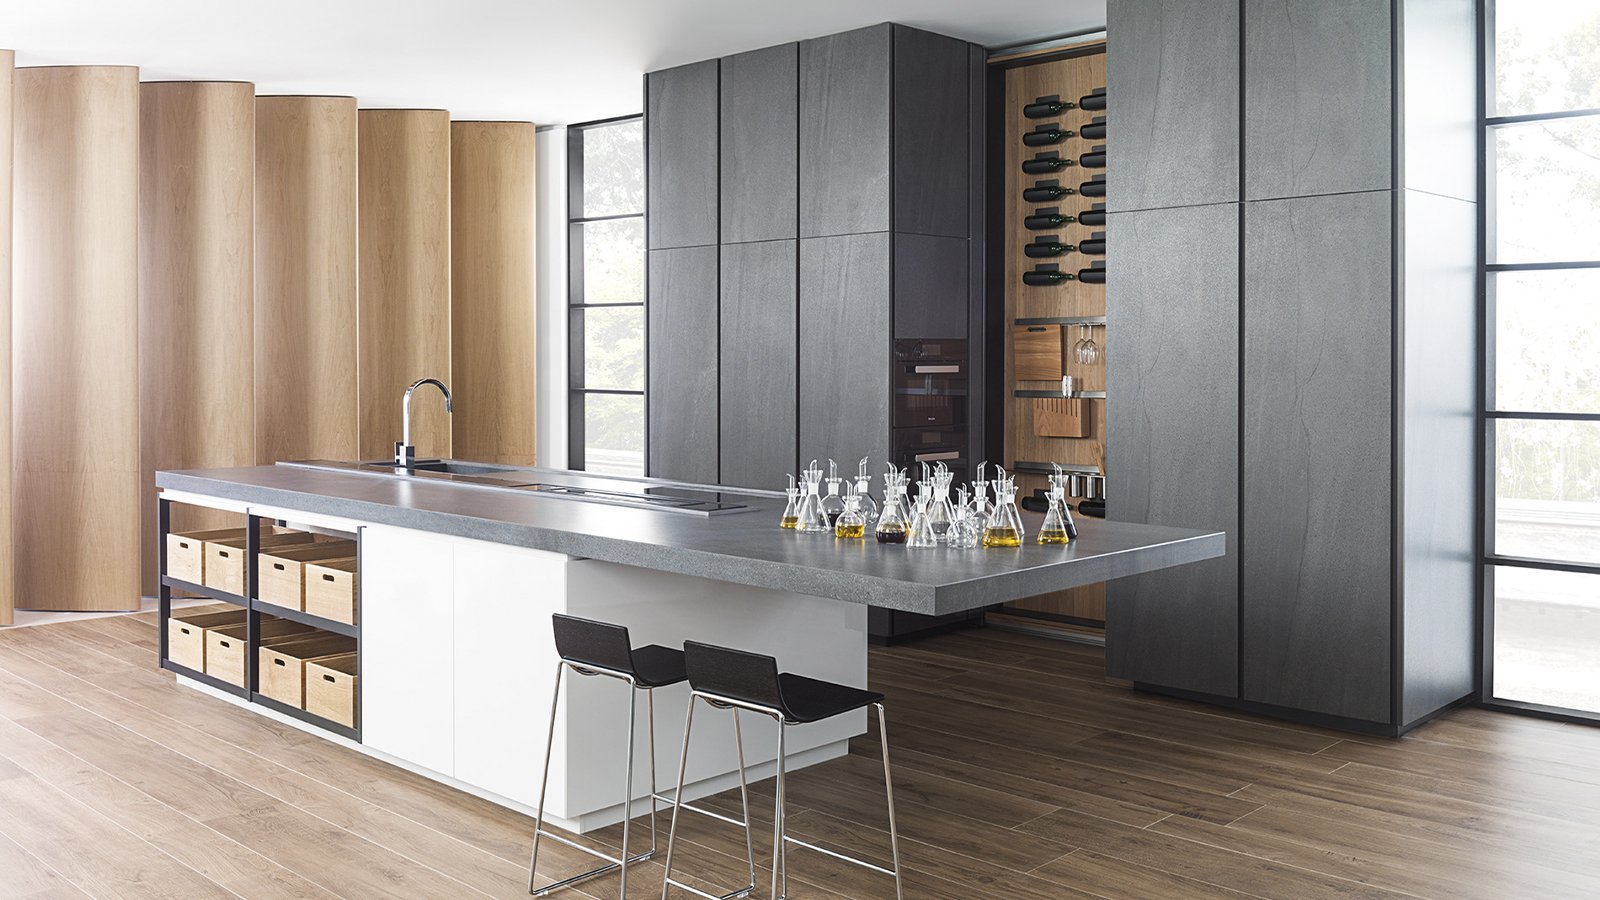 The best minimalist kitchens by PORCELANOSA for 2021